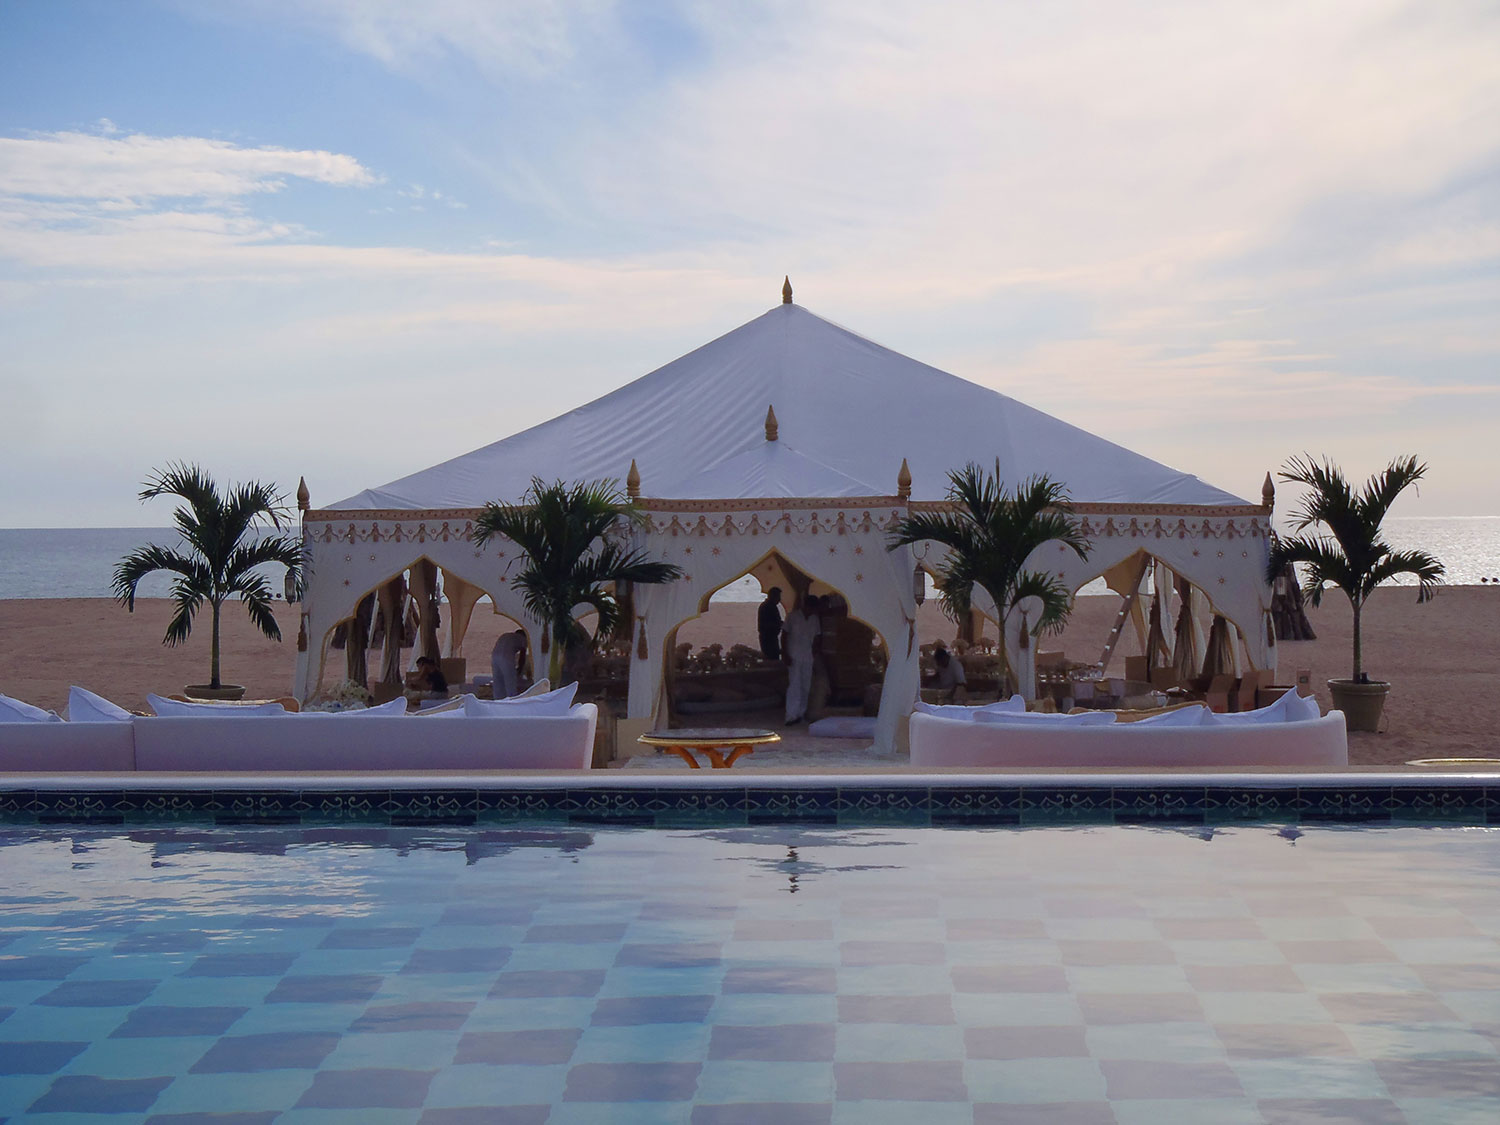 raj-tents-beach-chic-theme-raj-arches.jpg